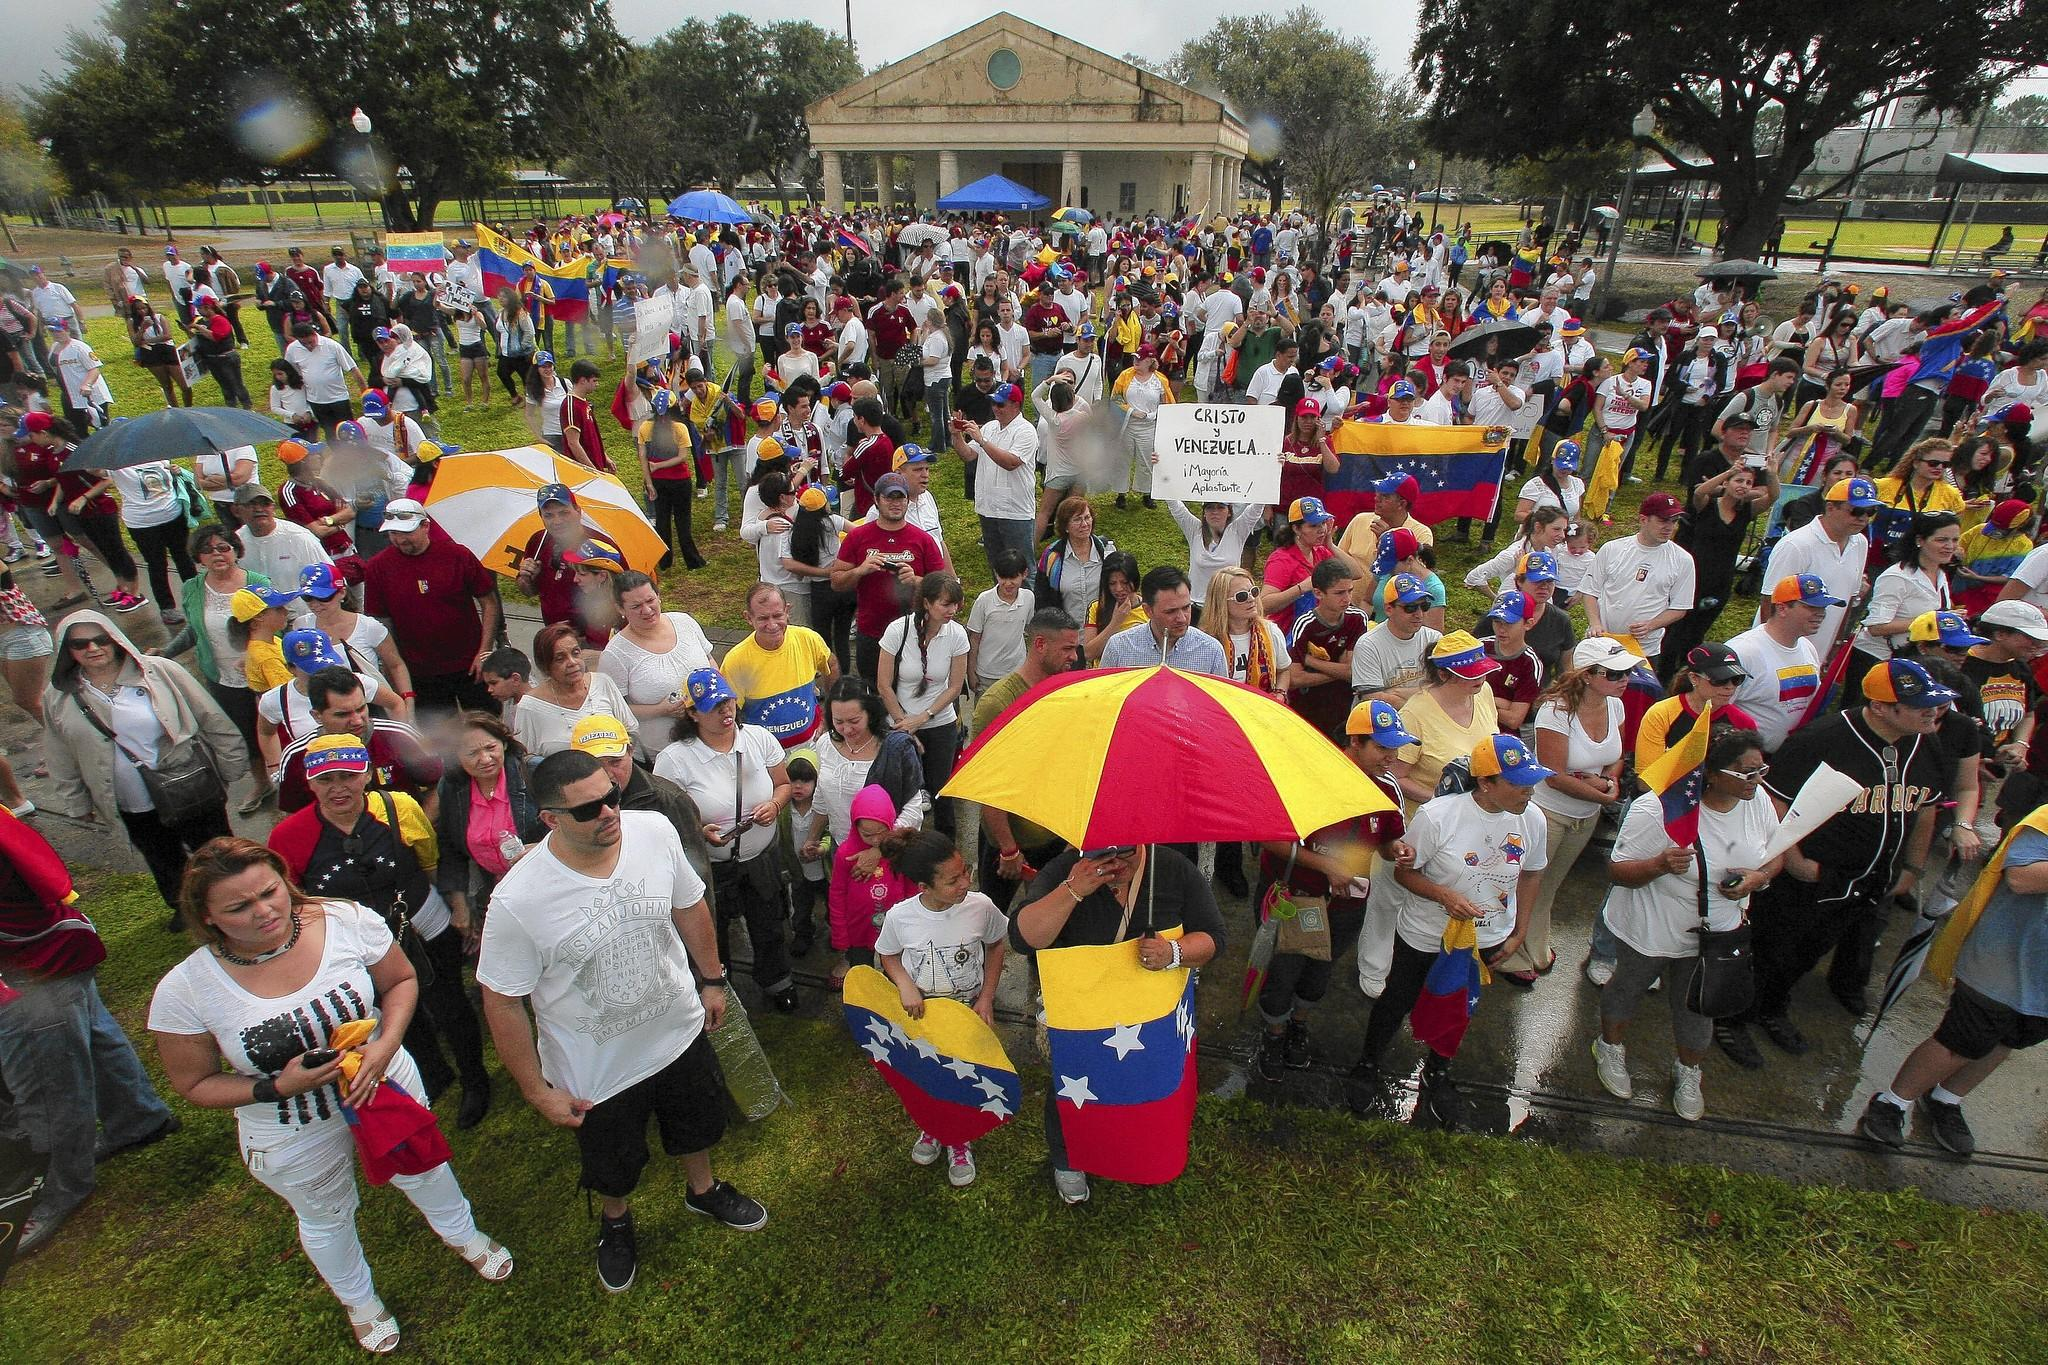 Venezuela supporters gather at Blue Jacket Park in Orlando to protest the Venezuelan government during a world-wide protest movement. Saturday, February 22, 2014. (Gary W. Green/Orlando Sentinel)